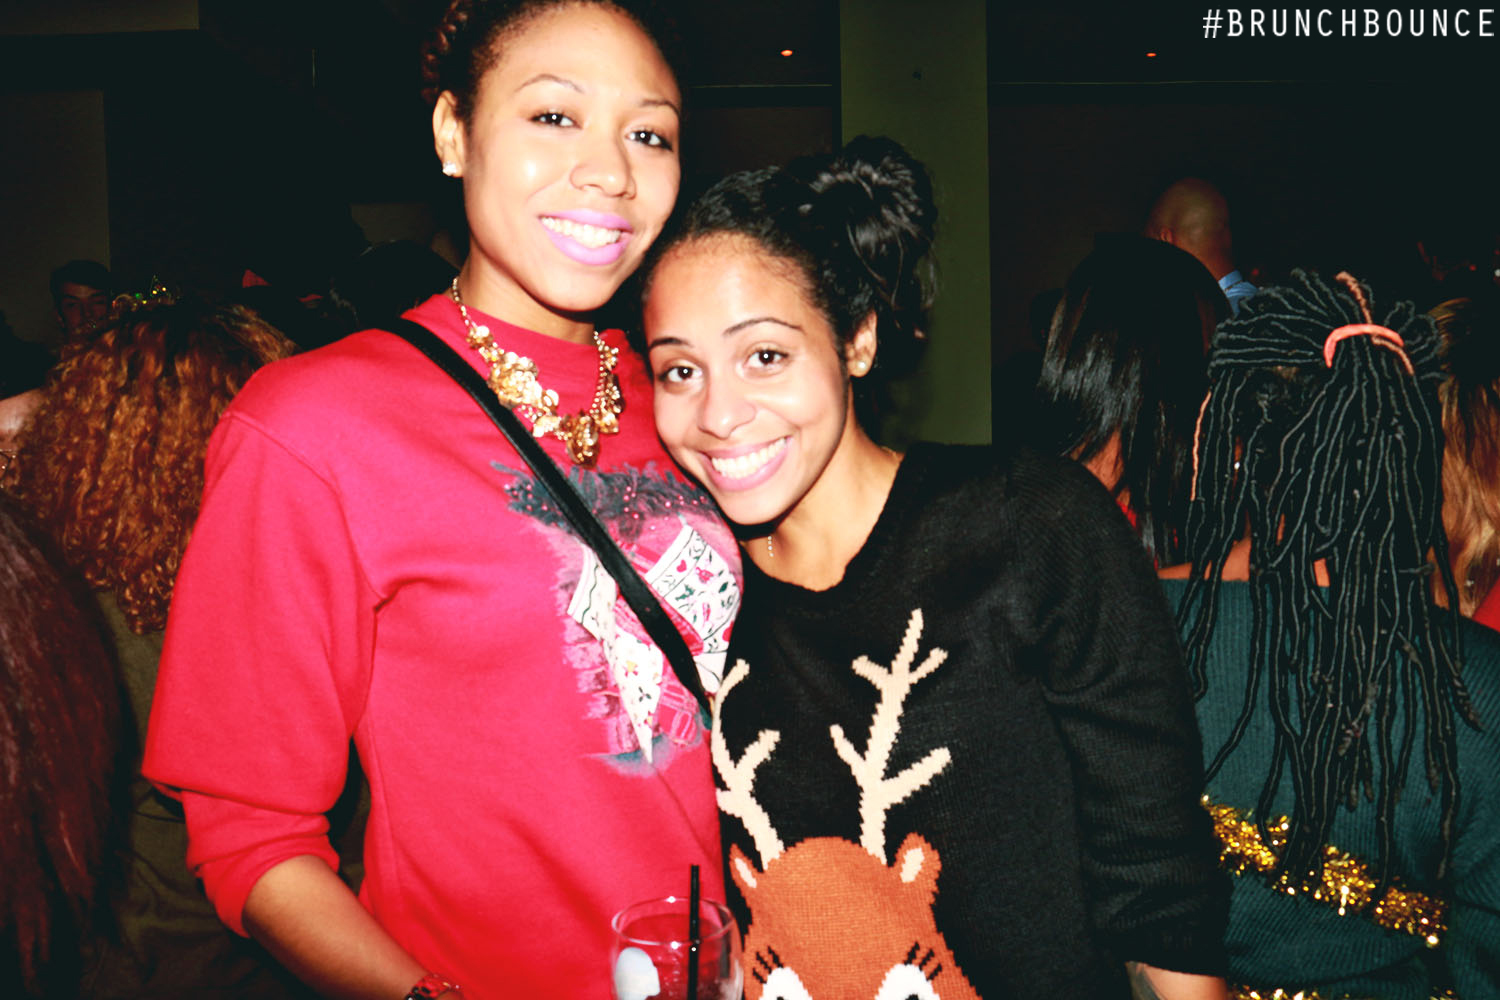 brunchbounce-ugly-christmas-sweater-party-122014_16082728505_o.jpg